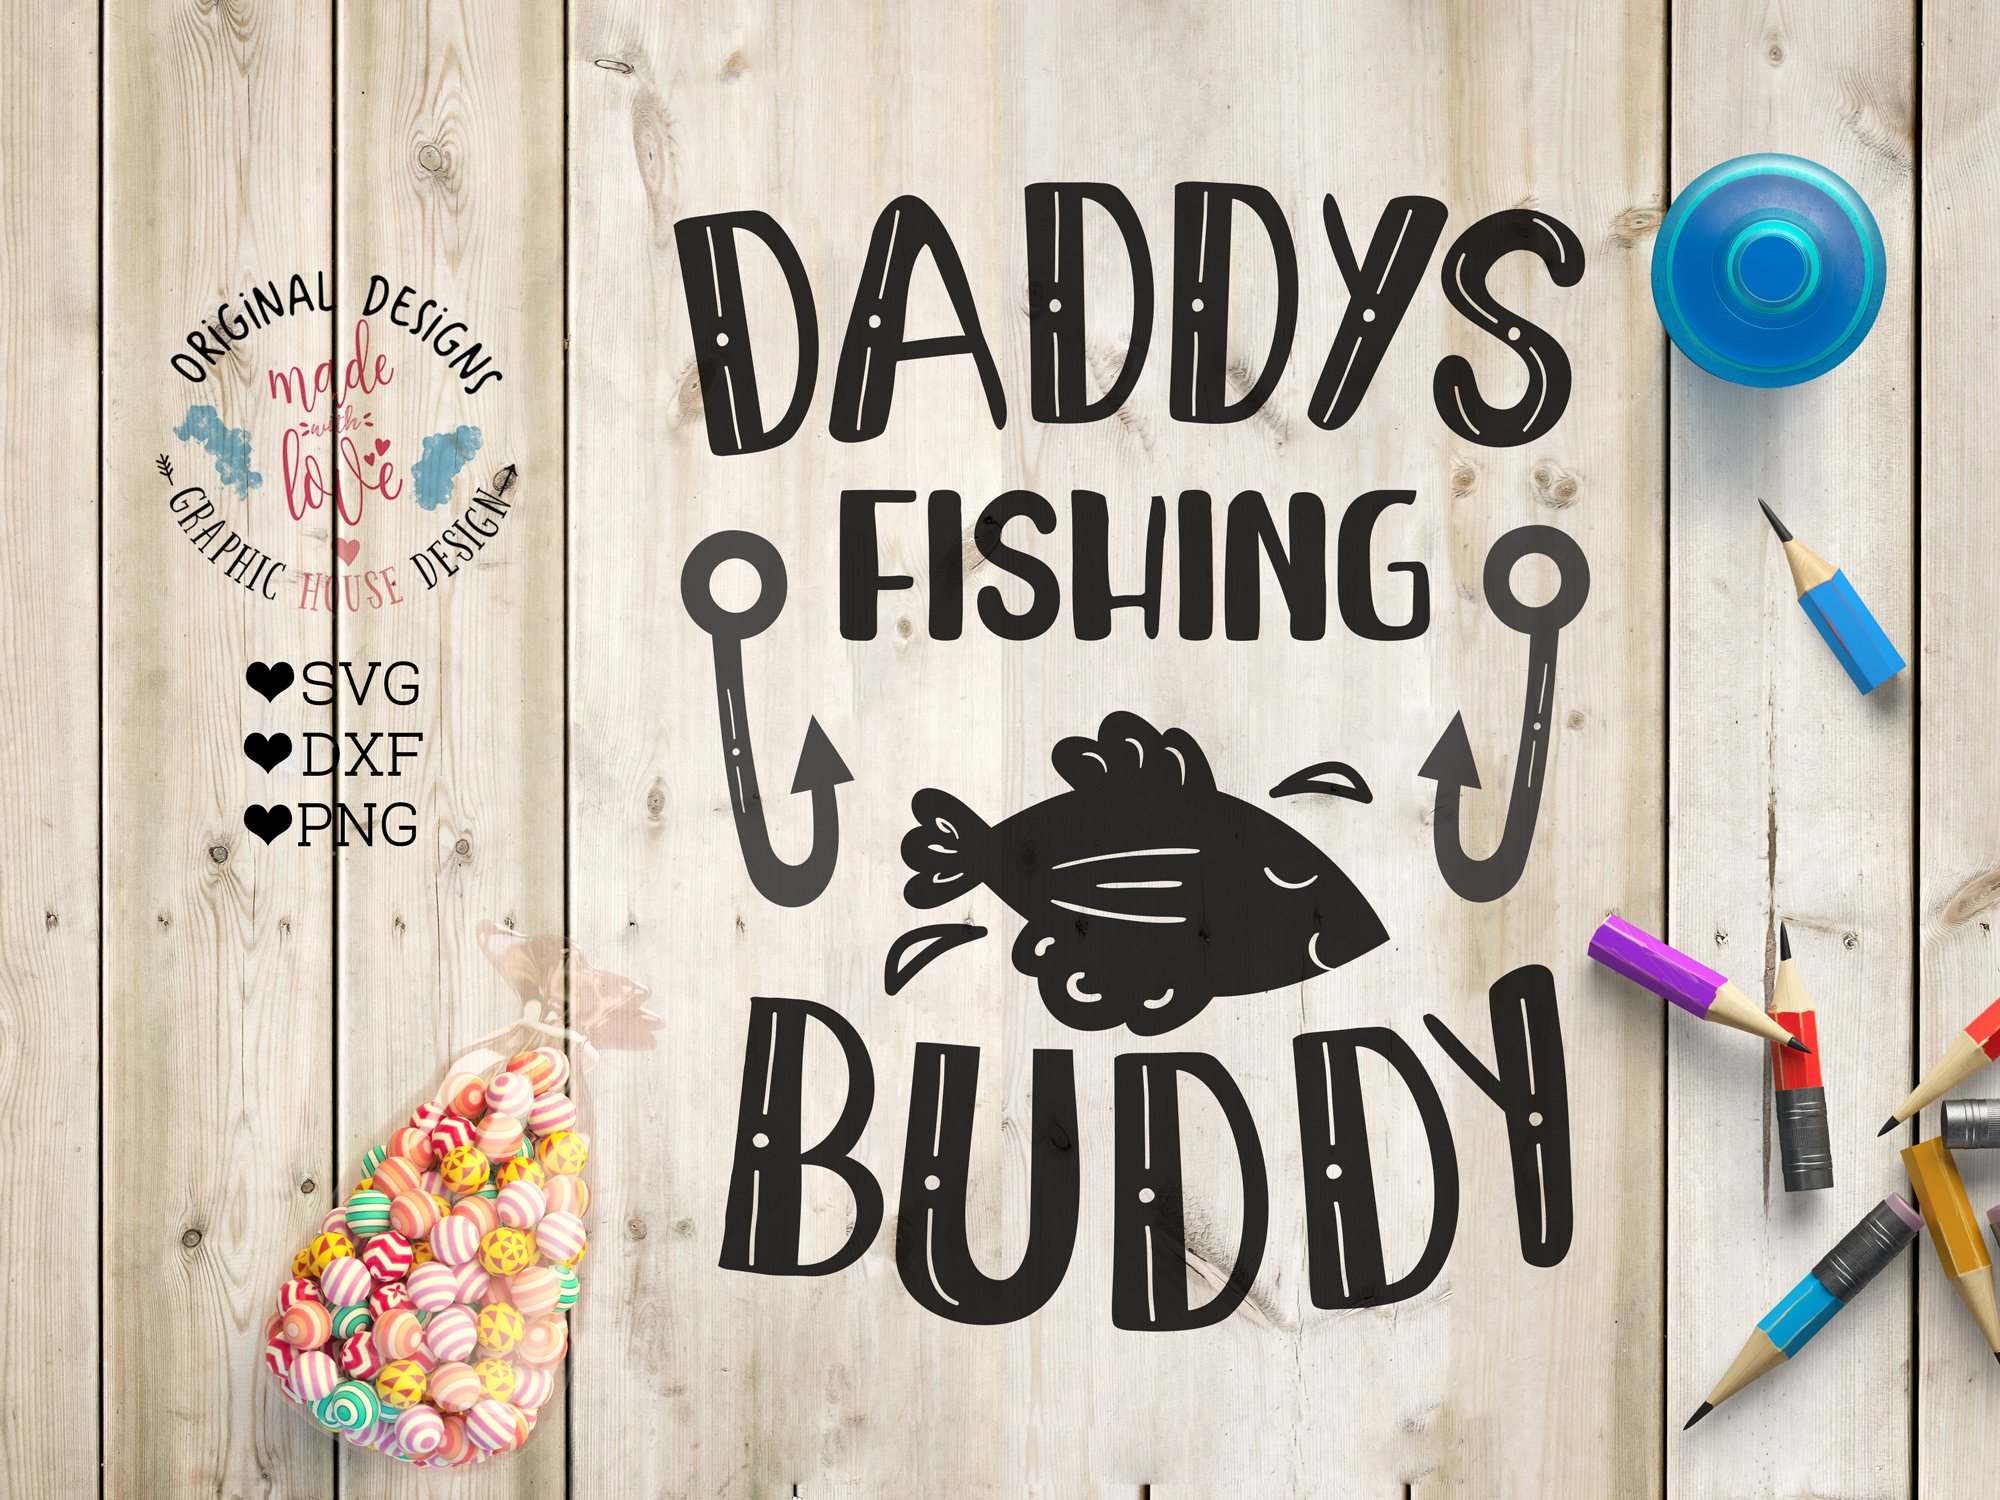 Download Daddy S Fishing Buddy Cutting File Pre Designed Illustrator Graphics Creative Market